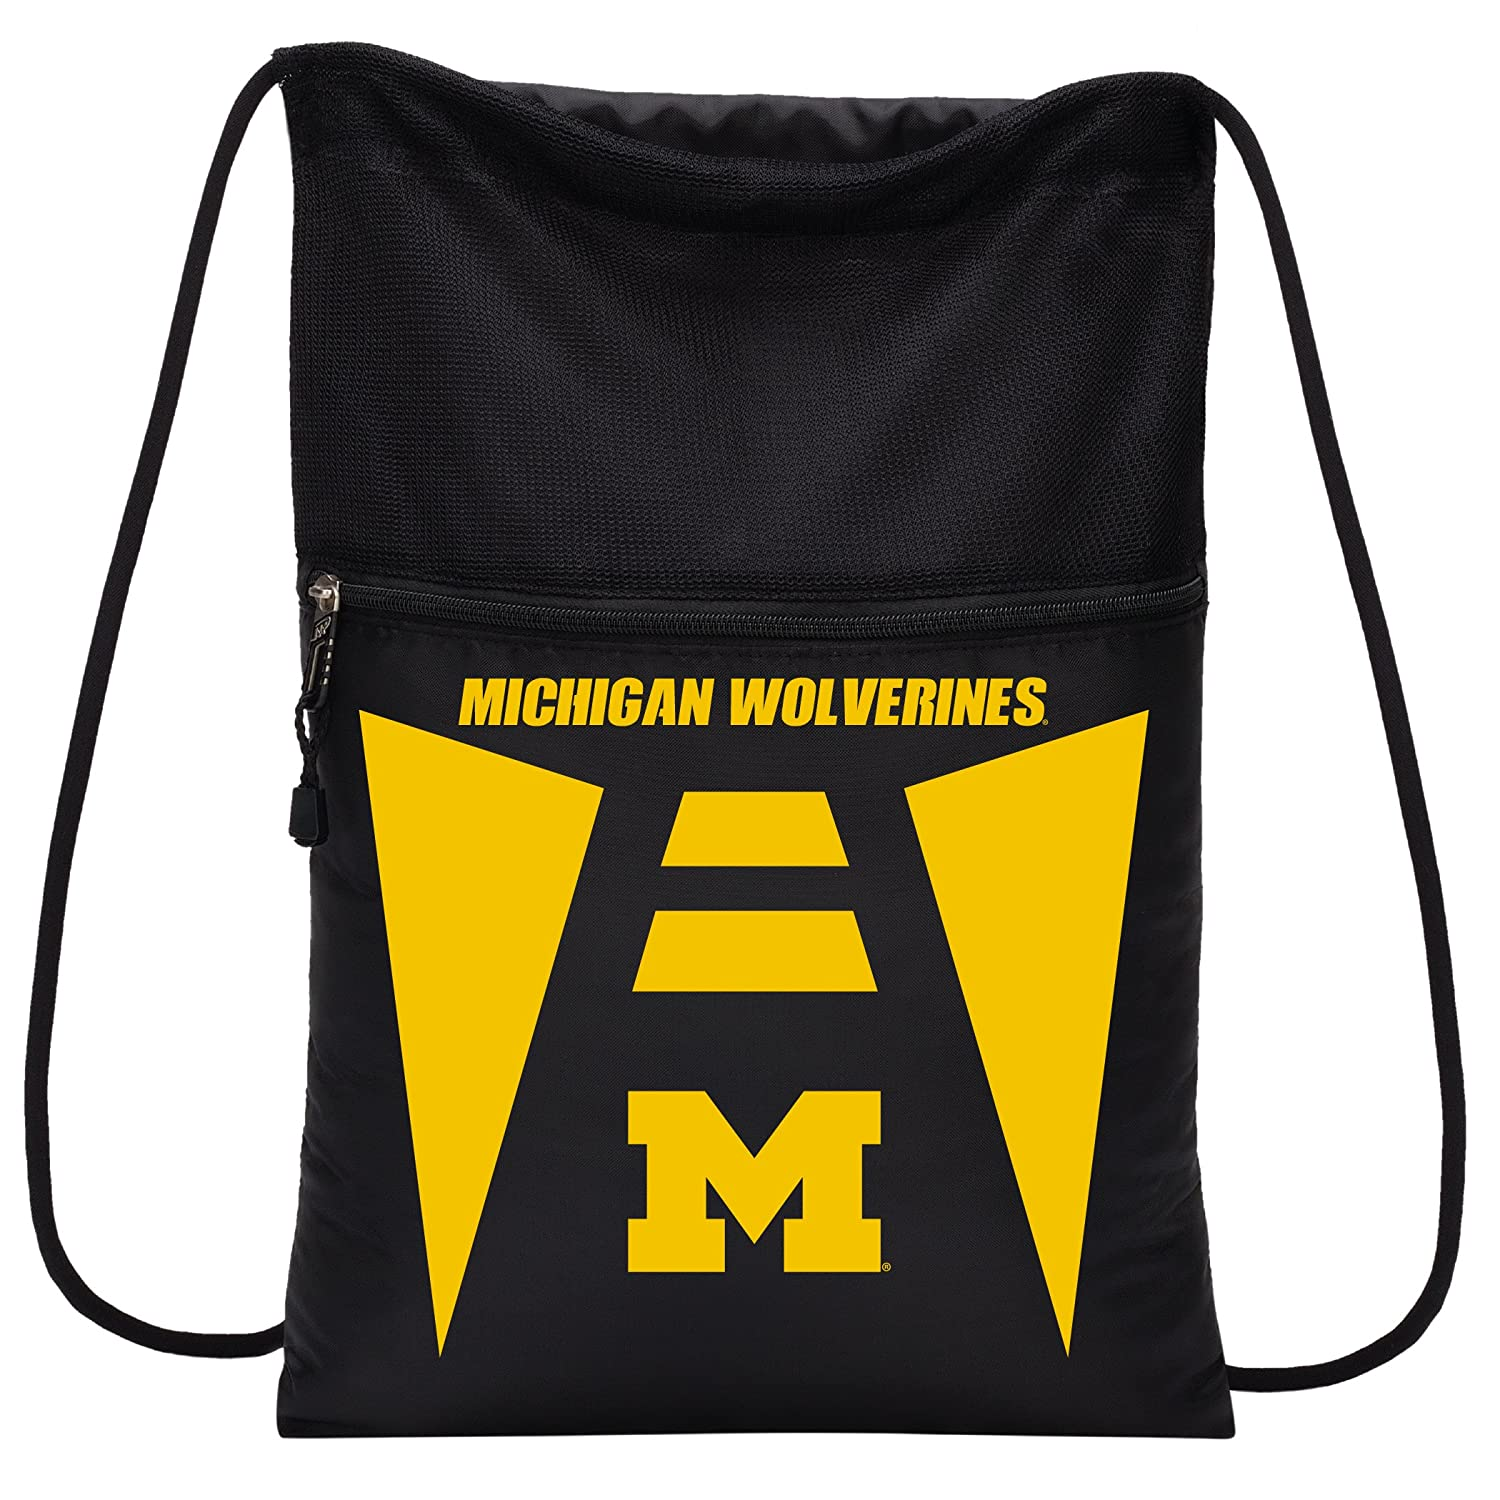 Officially Licensed NCAA TeamTech Backsack One Size